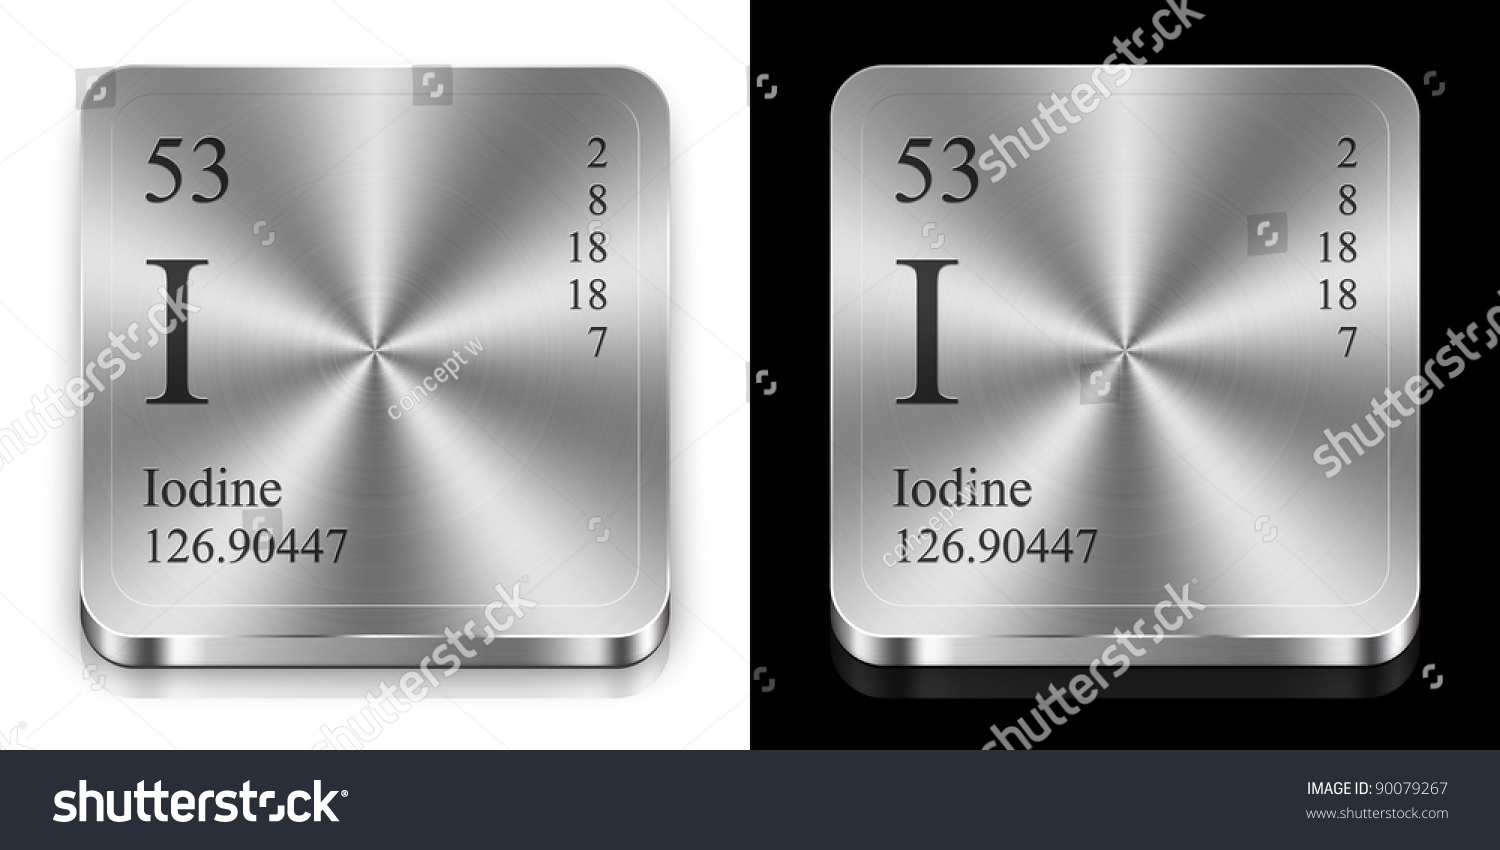 Iodine element periodic table two steel stock illustration iodine element of the periodic table two steel web buttons gamestrikefo Choice Image